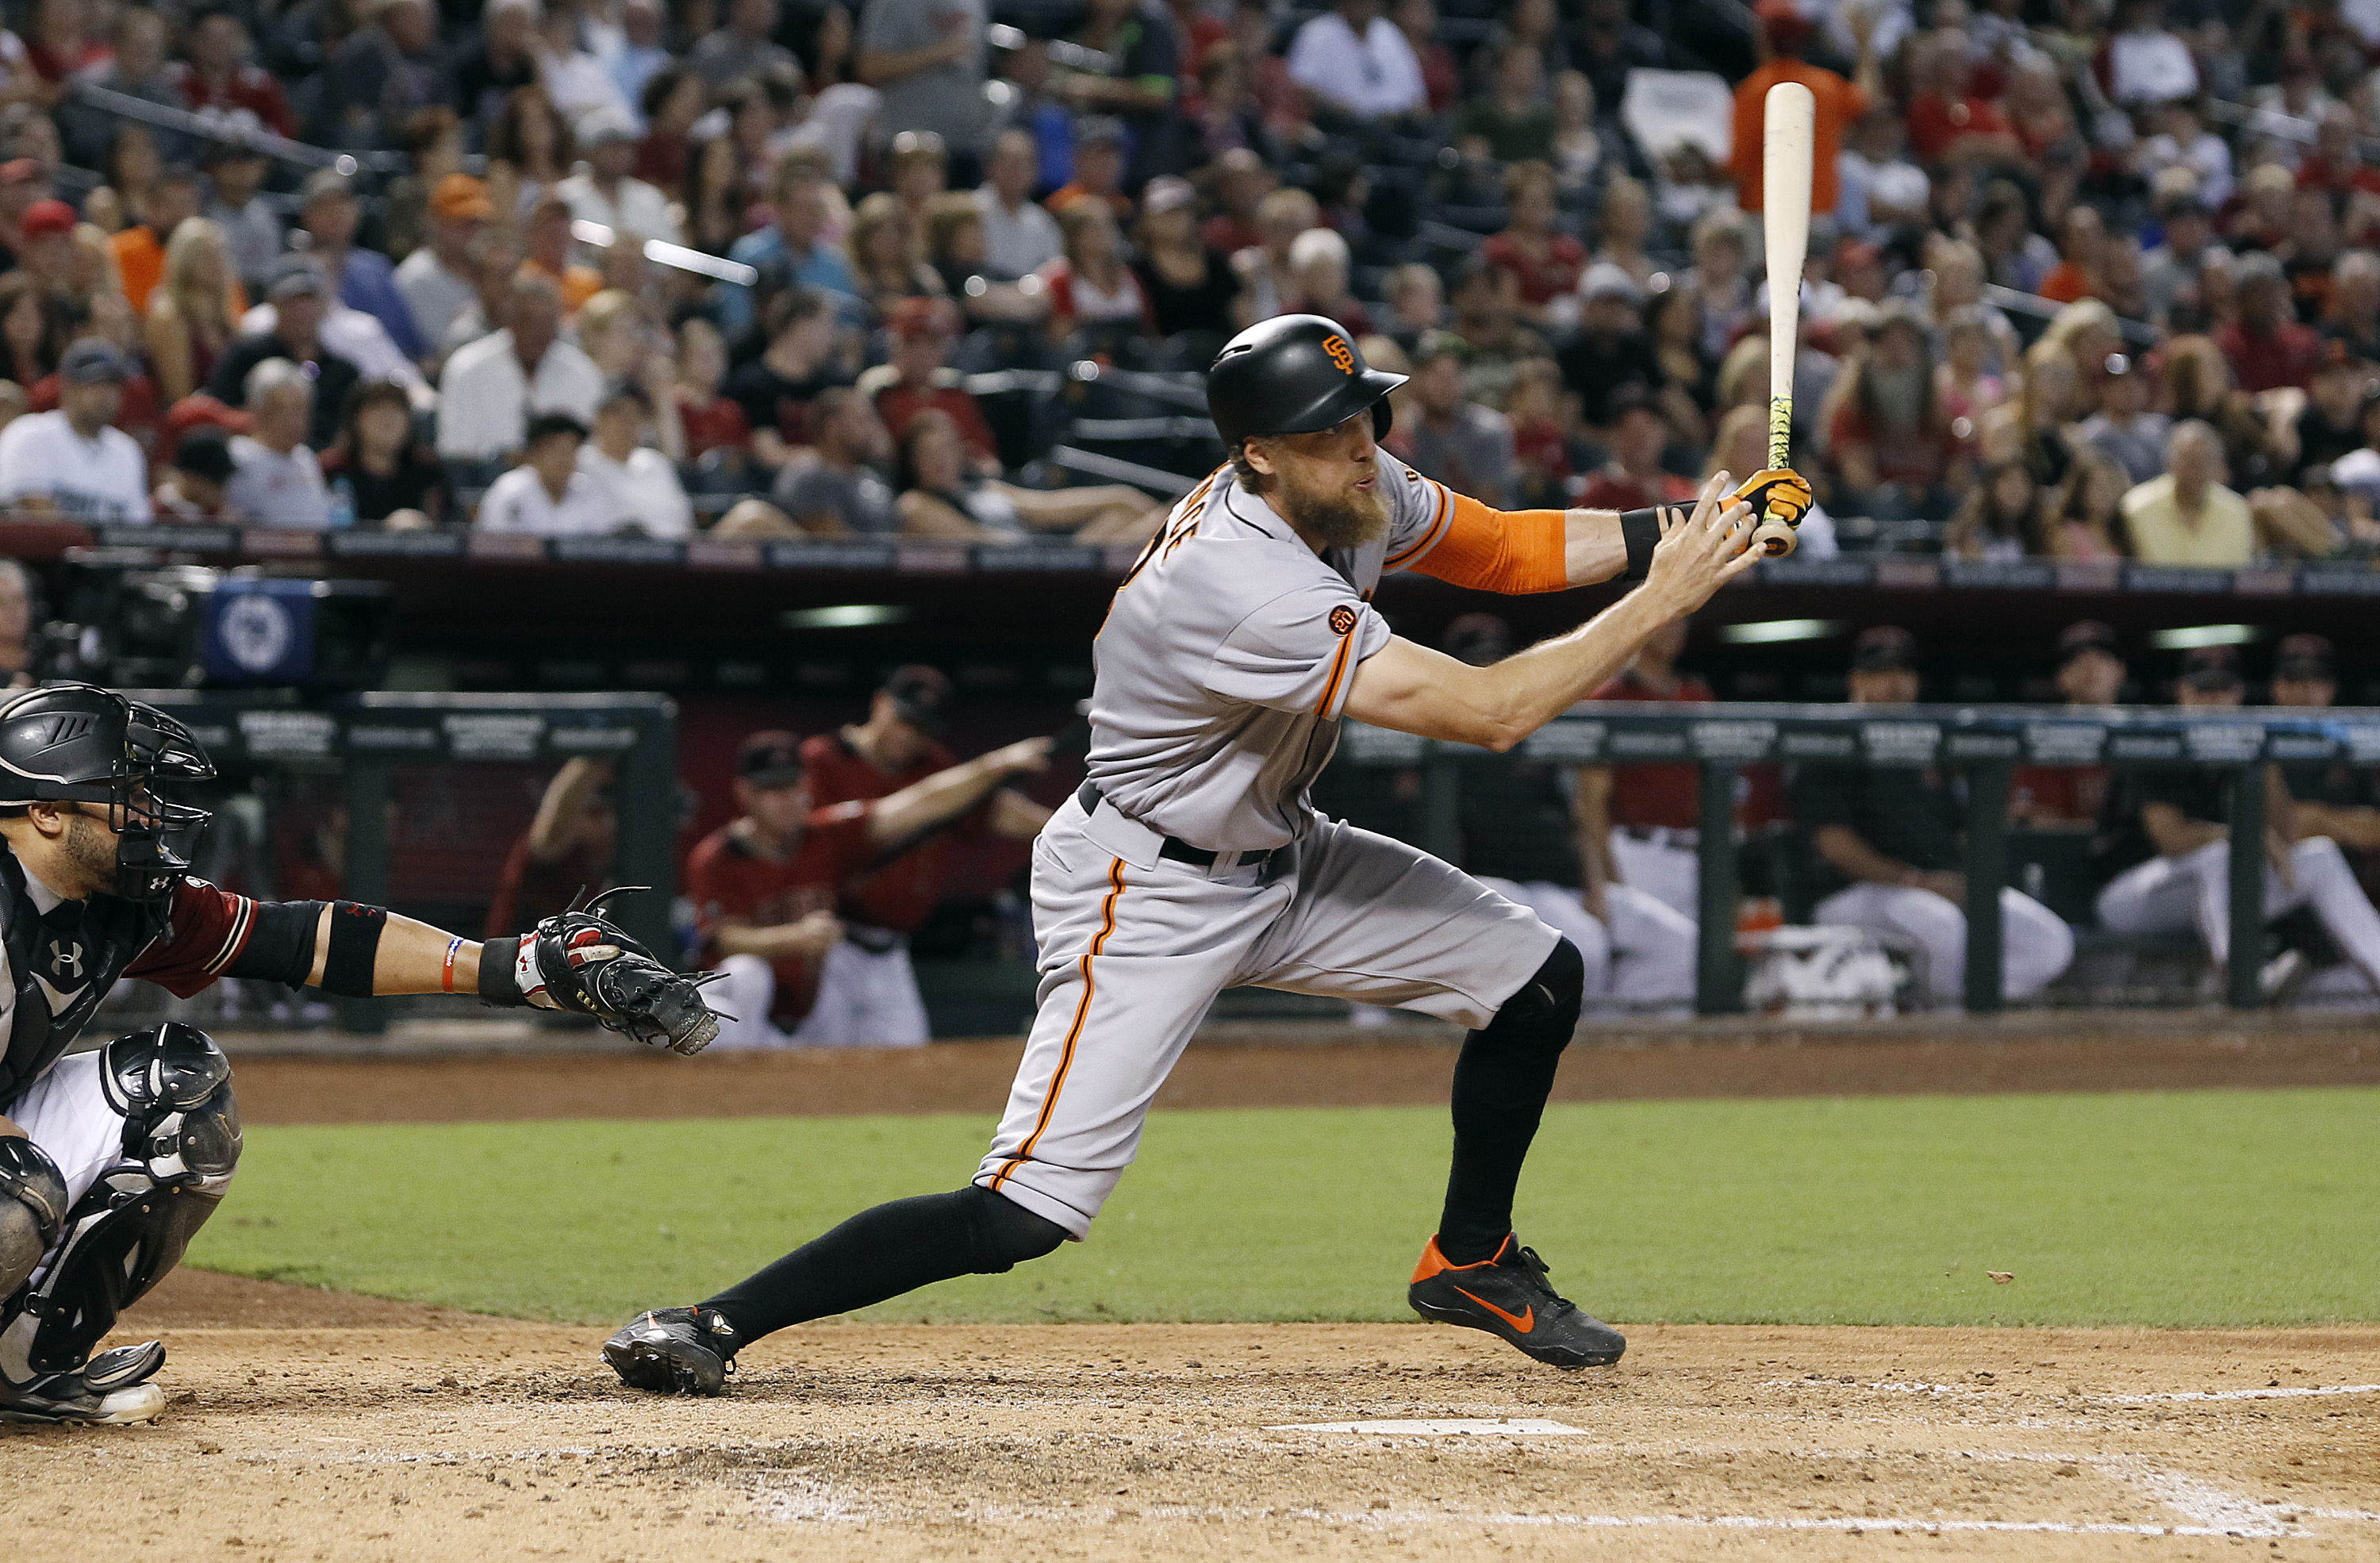 San Francisco Giants' Hunter Pence hits a double against the Arizona Diamondbacks during the seventh inning of a baseball game, Sunday, Sept. 11, 2016, in Phoenix. (AP Photo/Ralph Freso)